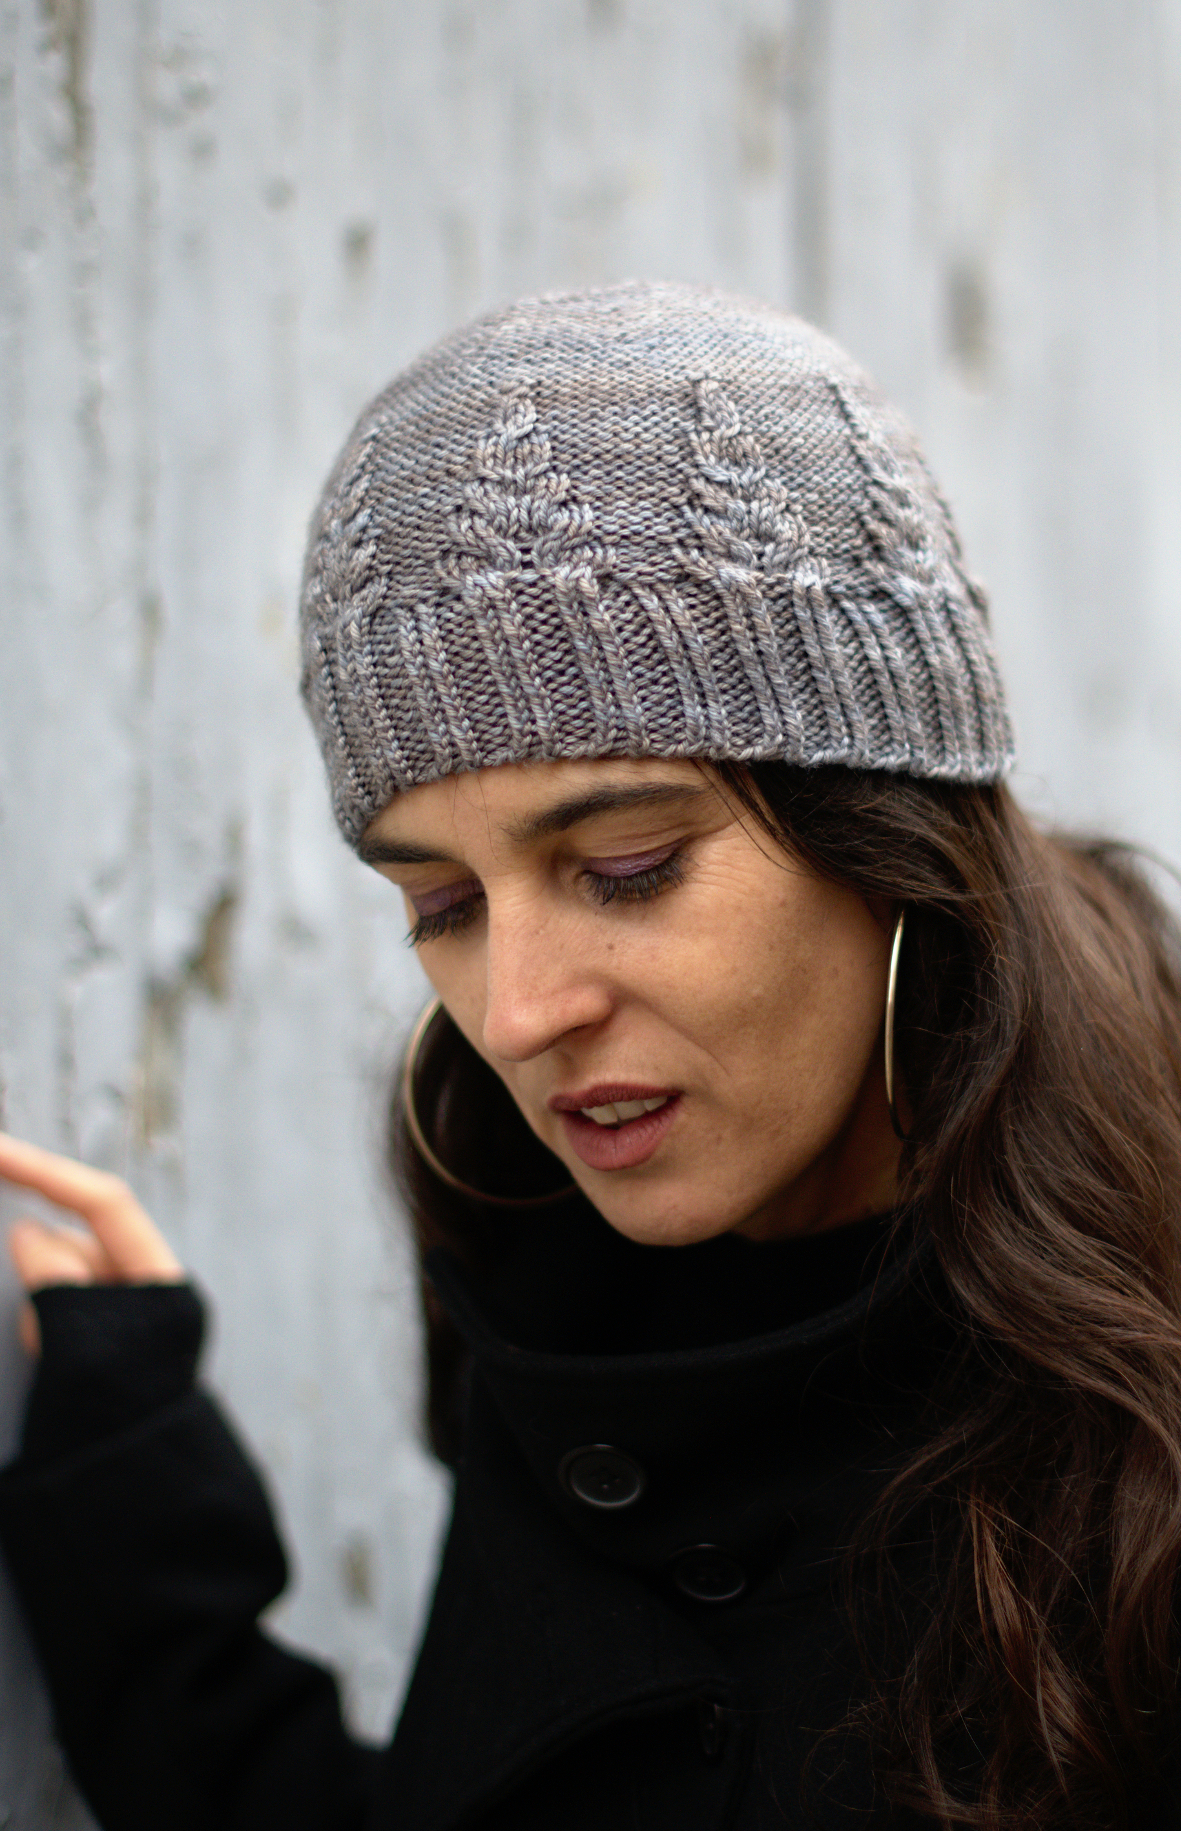 Armley beanie & slouch Hat patterns for DK weight yarn